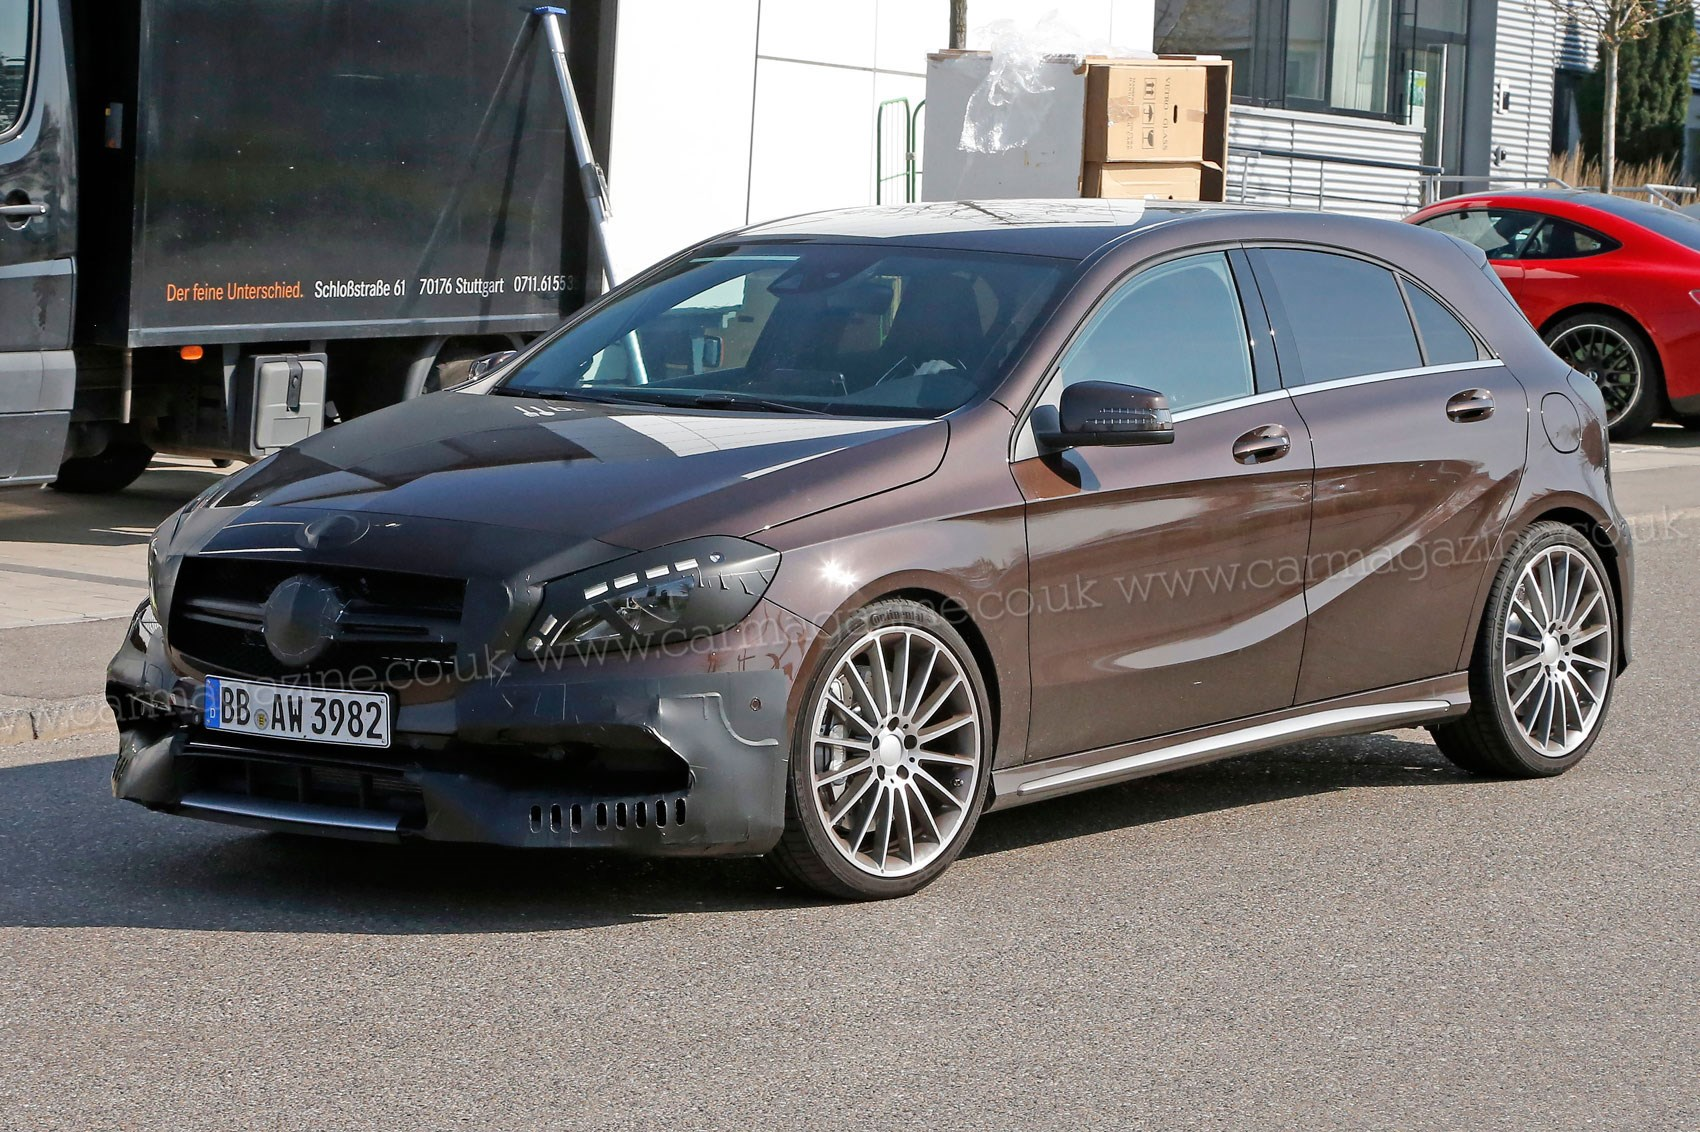 Mercedes a45 amg 2015 power boost for merc s superhatch for Mercedes benz a45 amg for sale